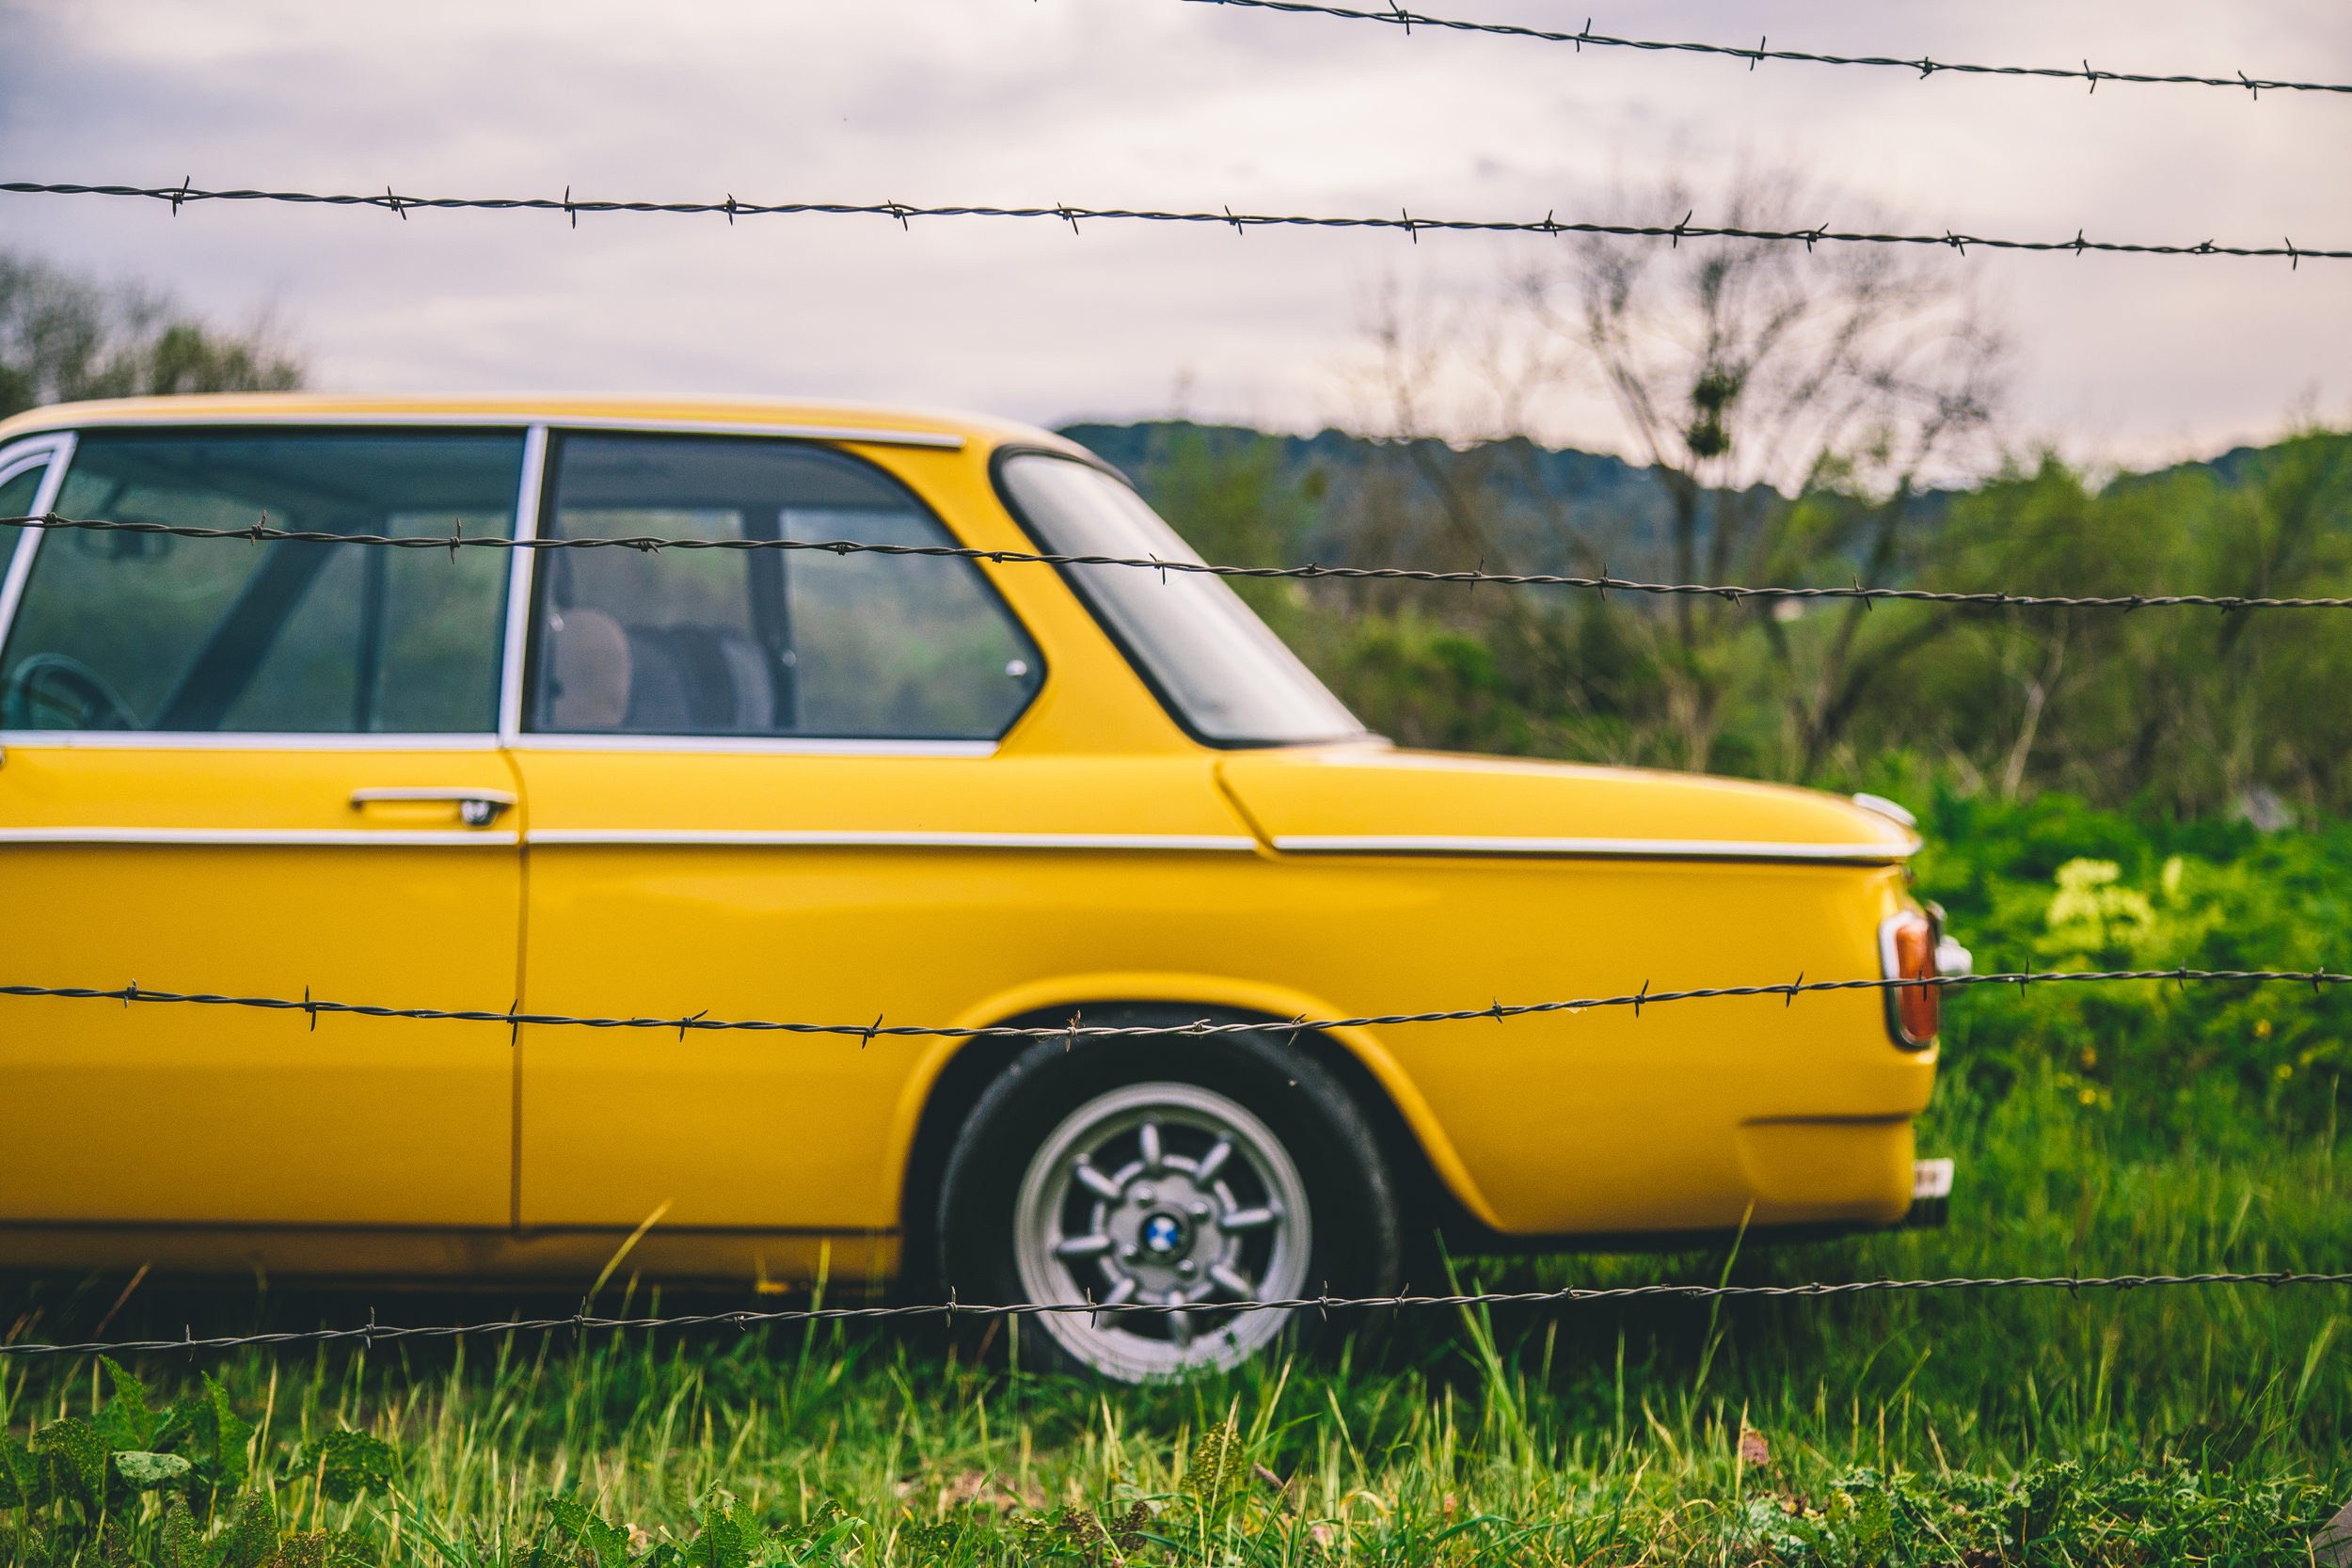 This is one of very few cars that bright yellow paint is acceptable on...